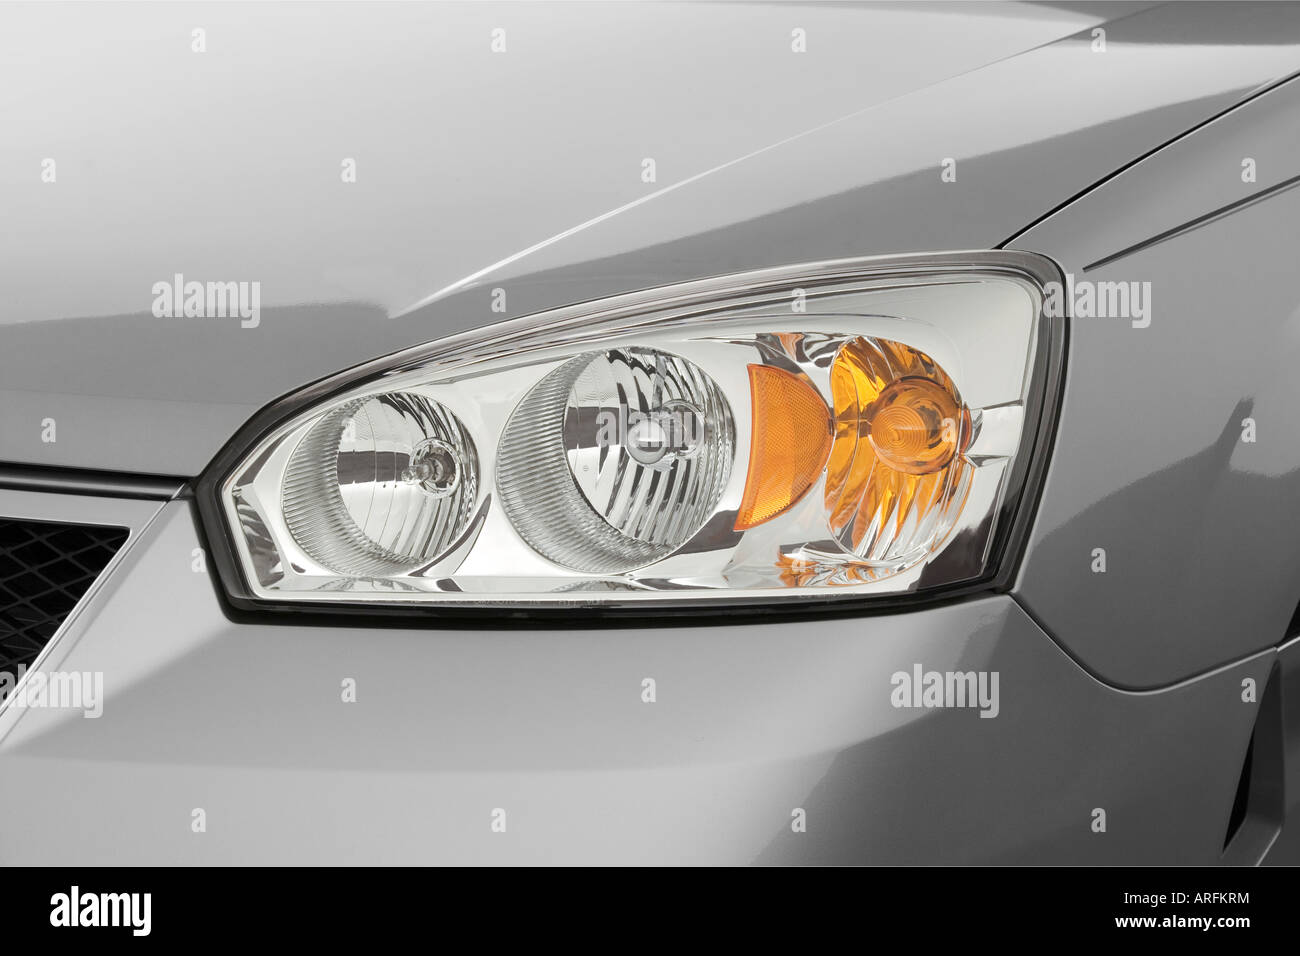 2007 chevrolet malibu ss in silver headlight